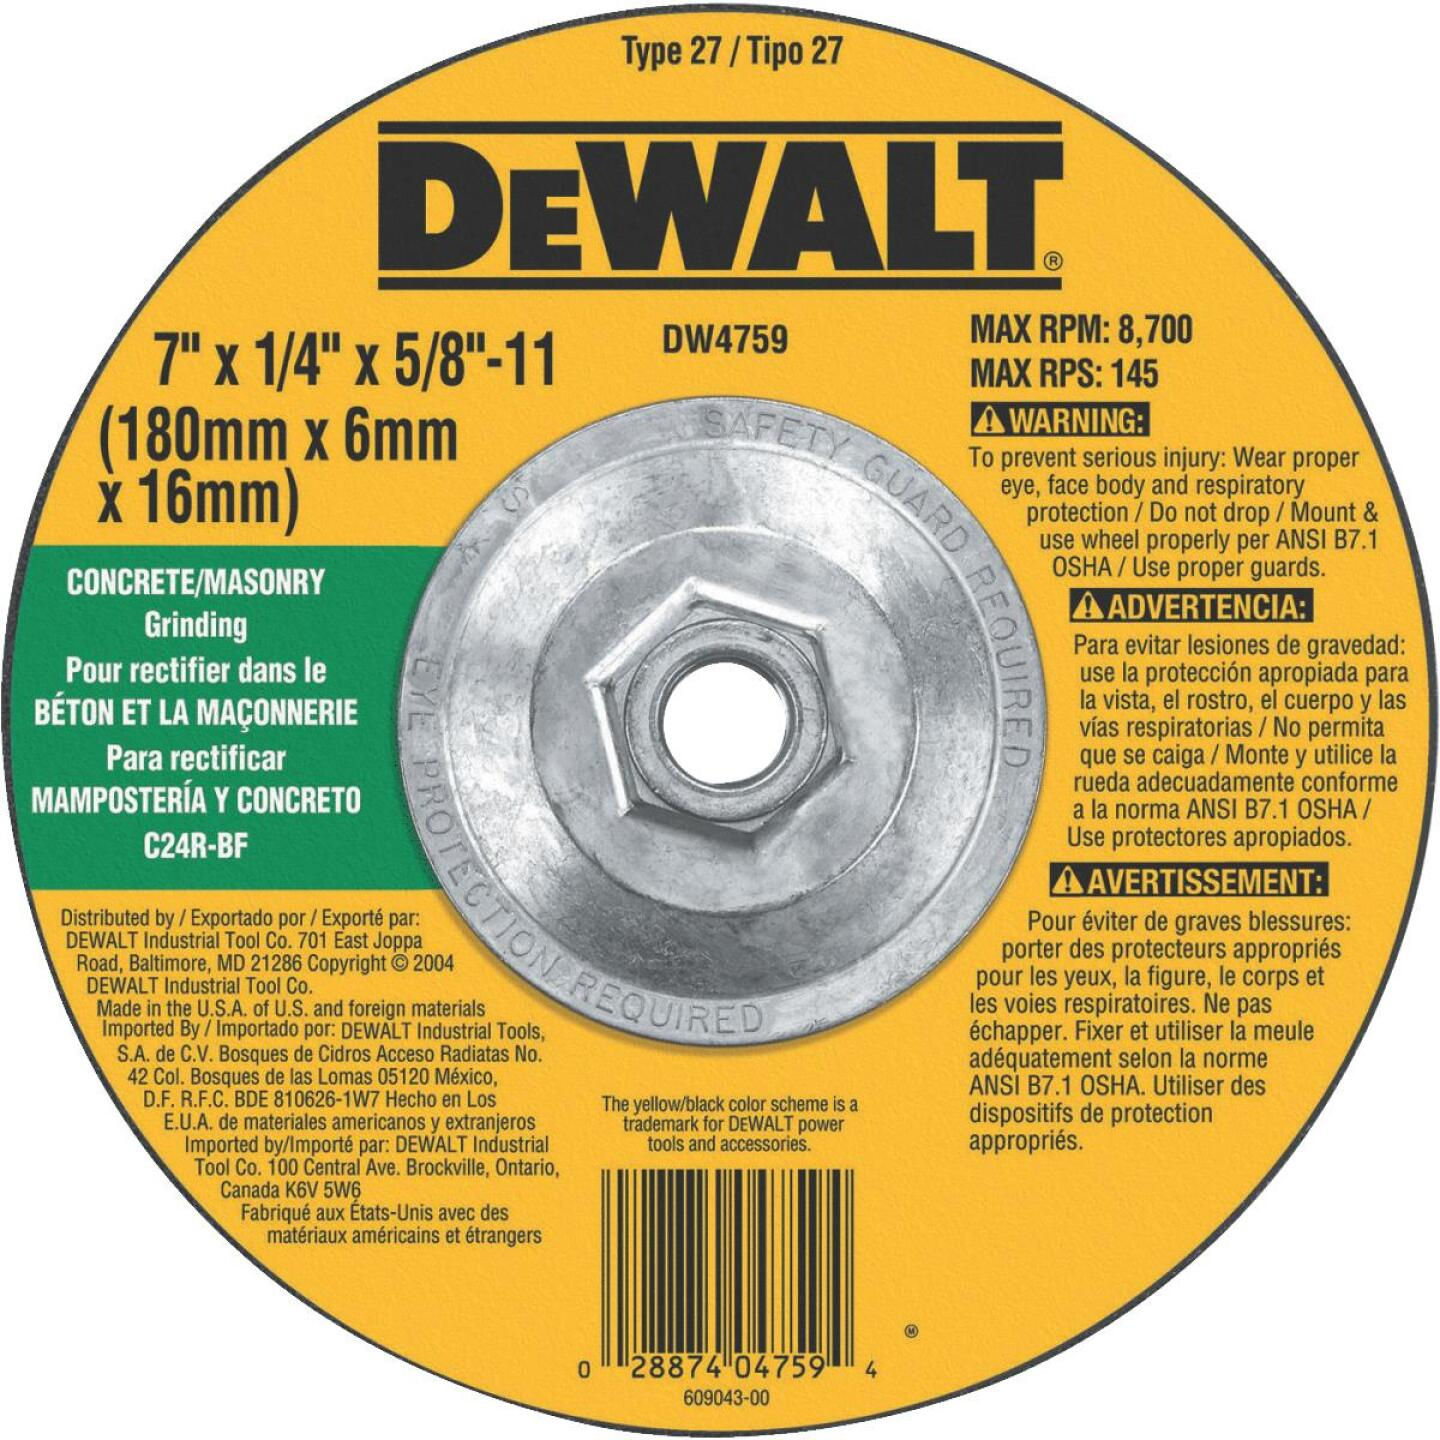 DeWalt HP Type 27 7 In. x 1/4 In. x 5/8 In.-11 Masonry Grinding Cut-Off Wheel Image 1